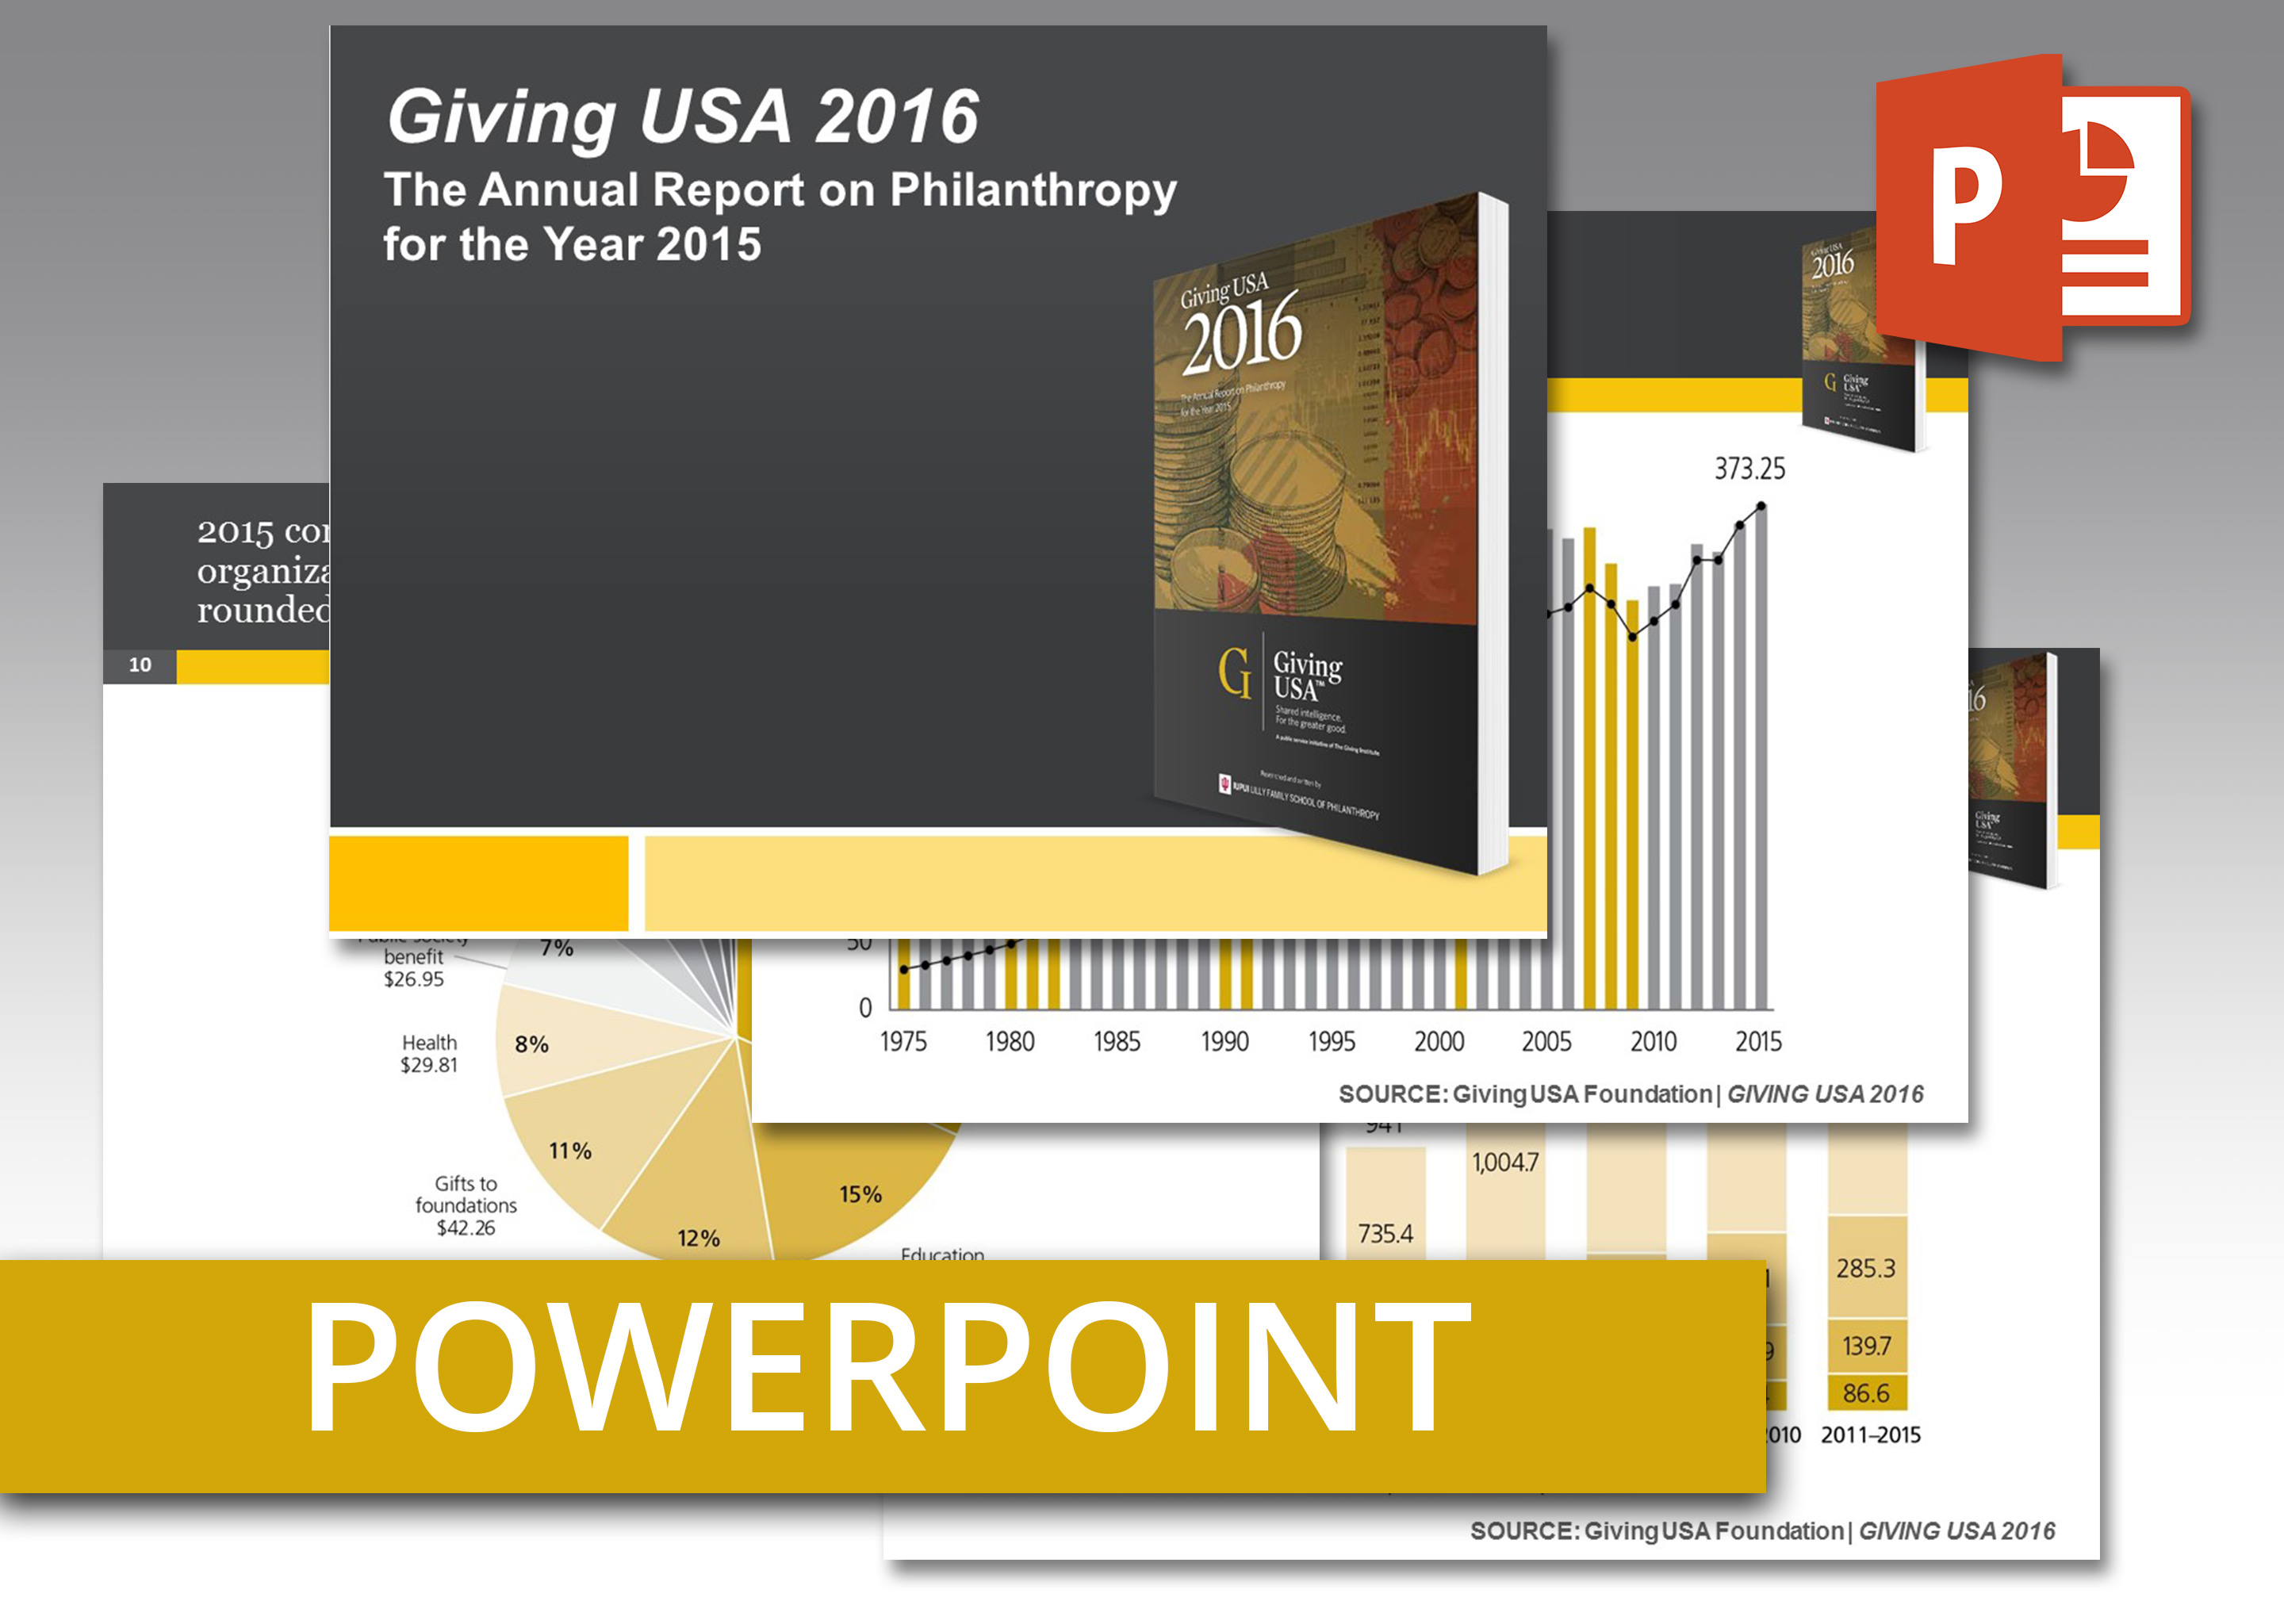 Usdgus  Ravishing Giving Usa  Powerpoint An Easytouse Presentation Of Report  With Outstanding Giving Usa  Powerpoint An Easytouse Presentation Of Report Findings Including Talking Points With Extraordinary Powerpoint Basics Tutorial Also Thank You Animation For Powerpoint In Addition Lipids Powerpoint And Nathaniel Hawthorne Powerpoint As Well As Author Purpose Powerpoint Additionally Microsoft Powerpoint Theme Download From Givingusaorg With Usdgus  Outstanding Giving Usa  Powerpoint An Easytouse Presentation Of Report  With Extraordinary Giving Usa  Powerpoint An Easytouse Presentation Of Report Findings Including Talking Points And Ravishing Powerpoint Basics Tutorial Also Thank You Animation For Powerpoint In Addition Lipids Powerpoint From Givingusaorg